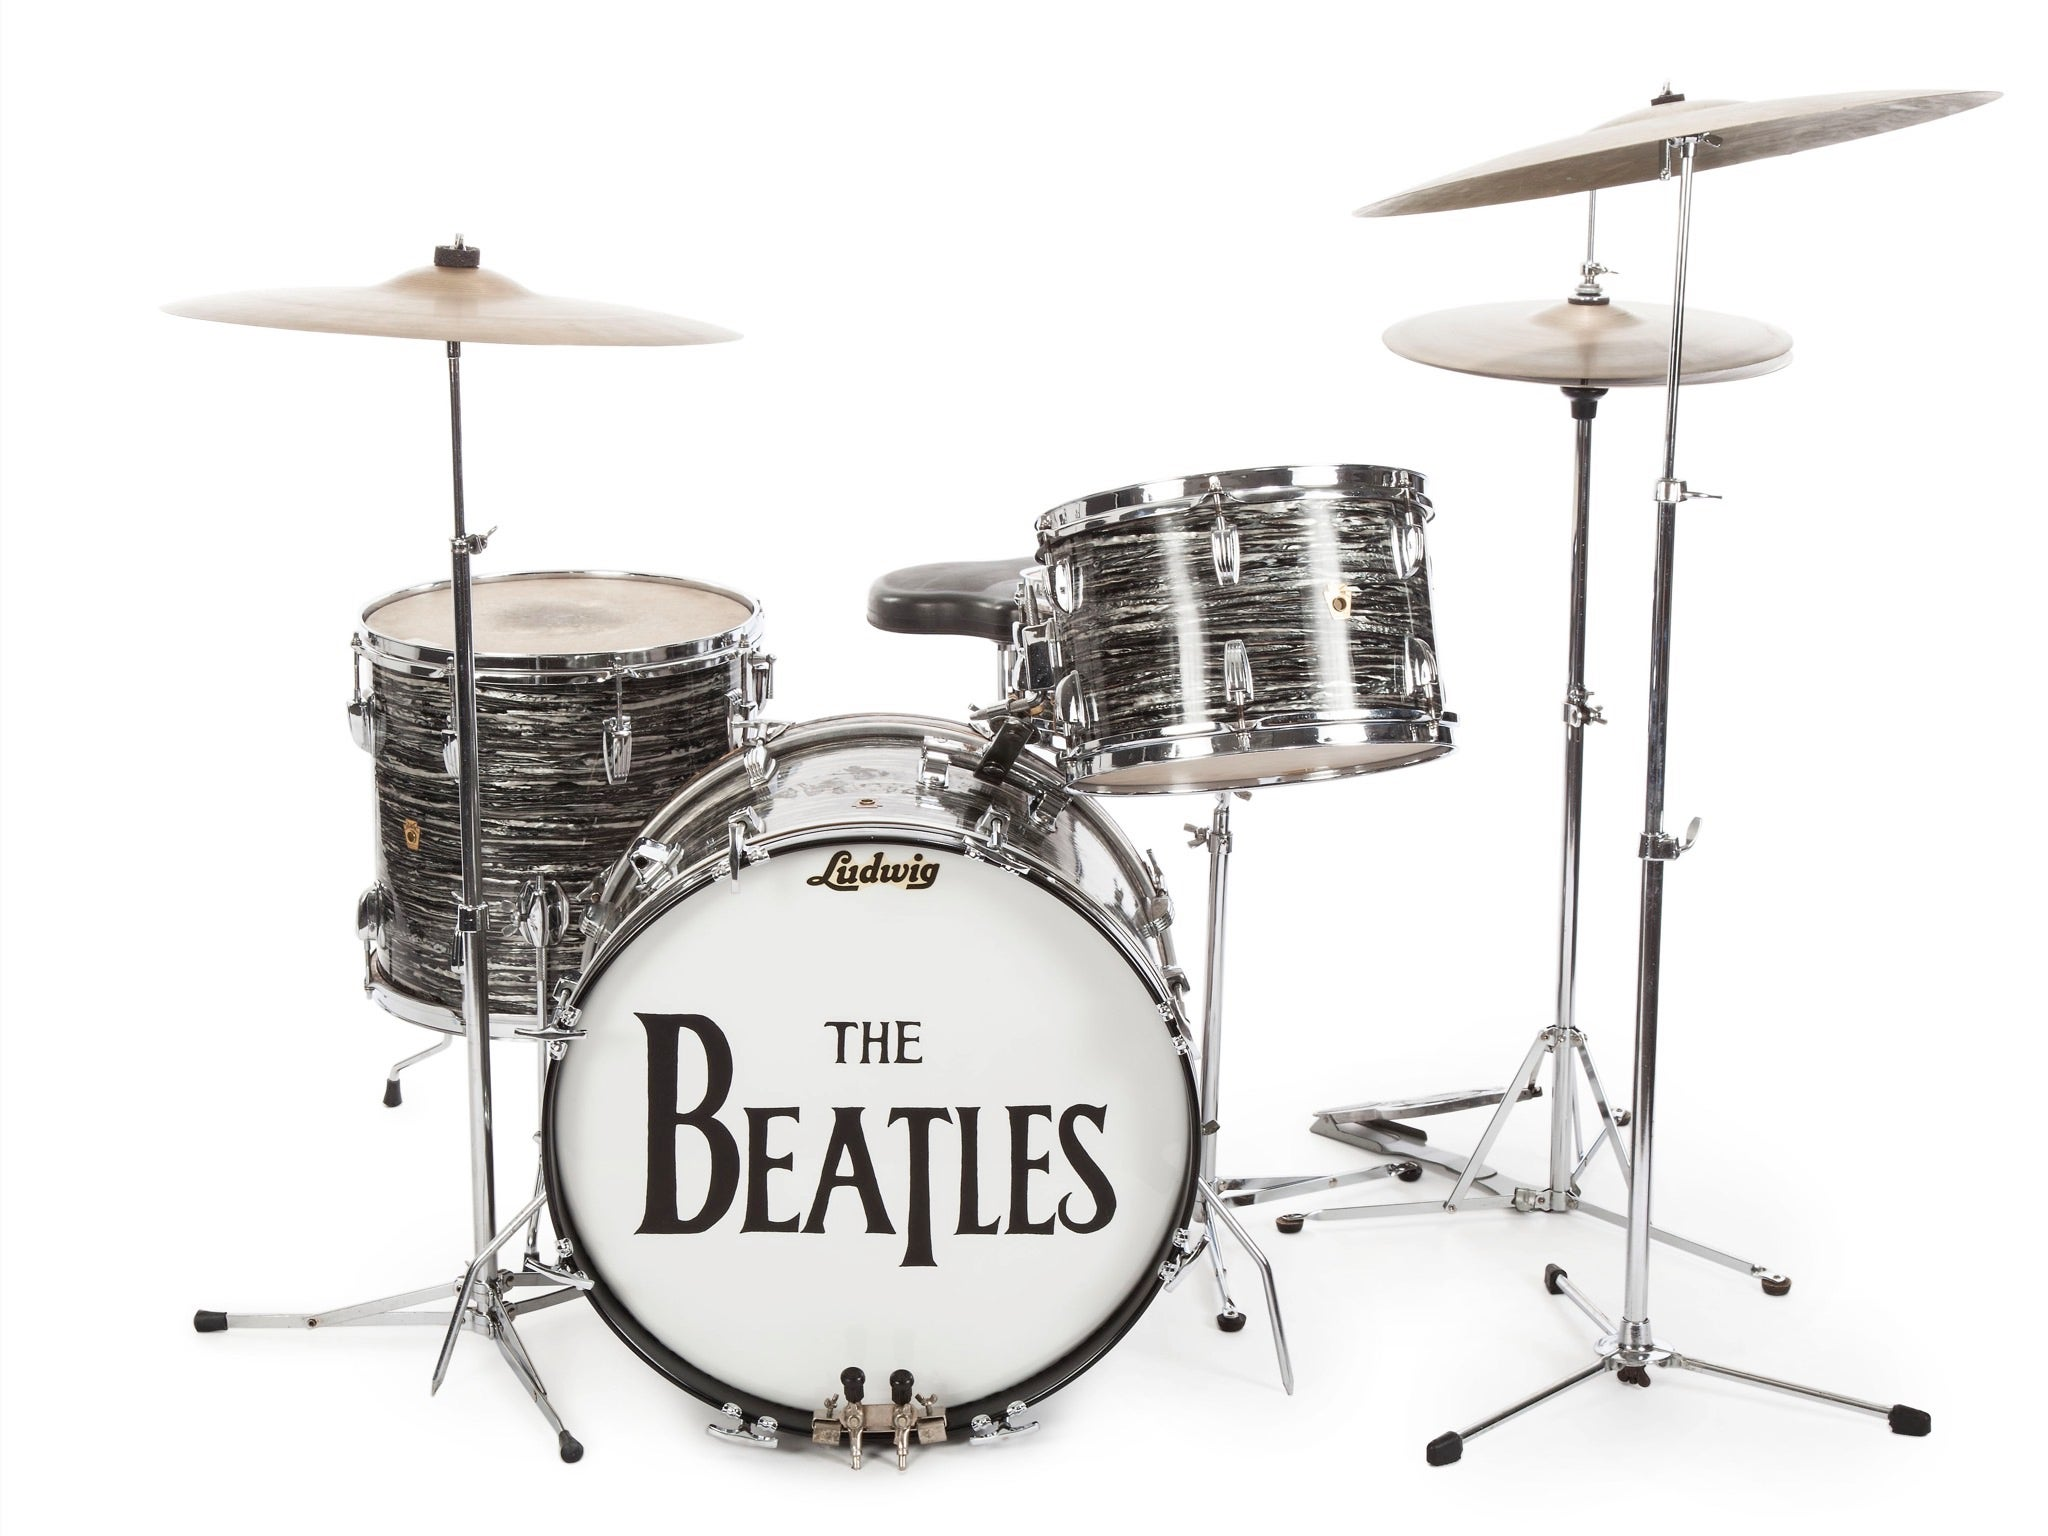 Ringo Starr Sells Off Drum Kits And Other Beatles Stuff As Part Of Downsize Move